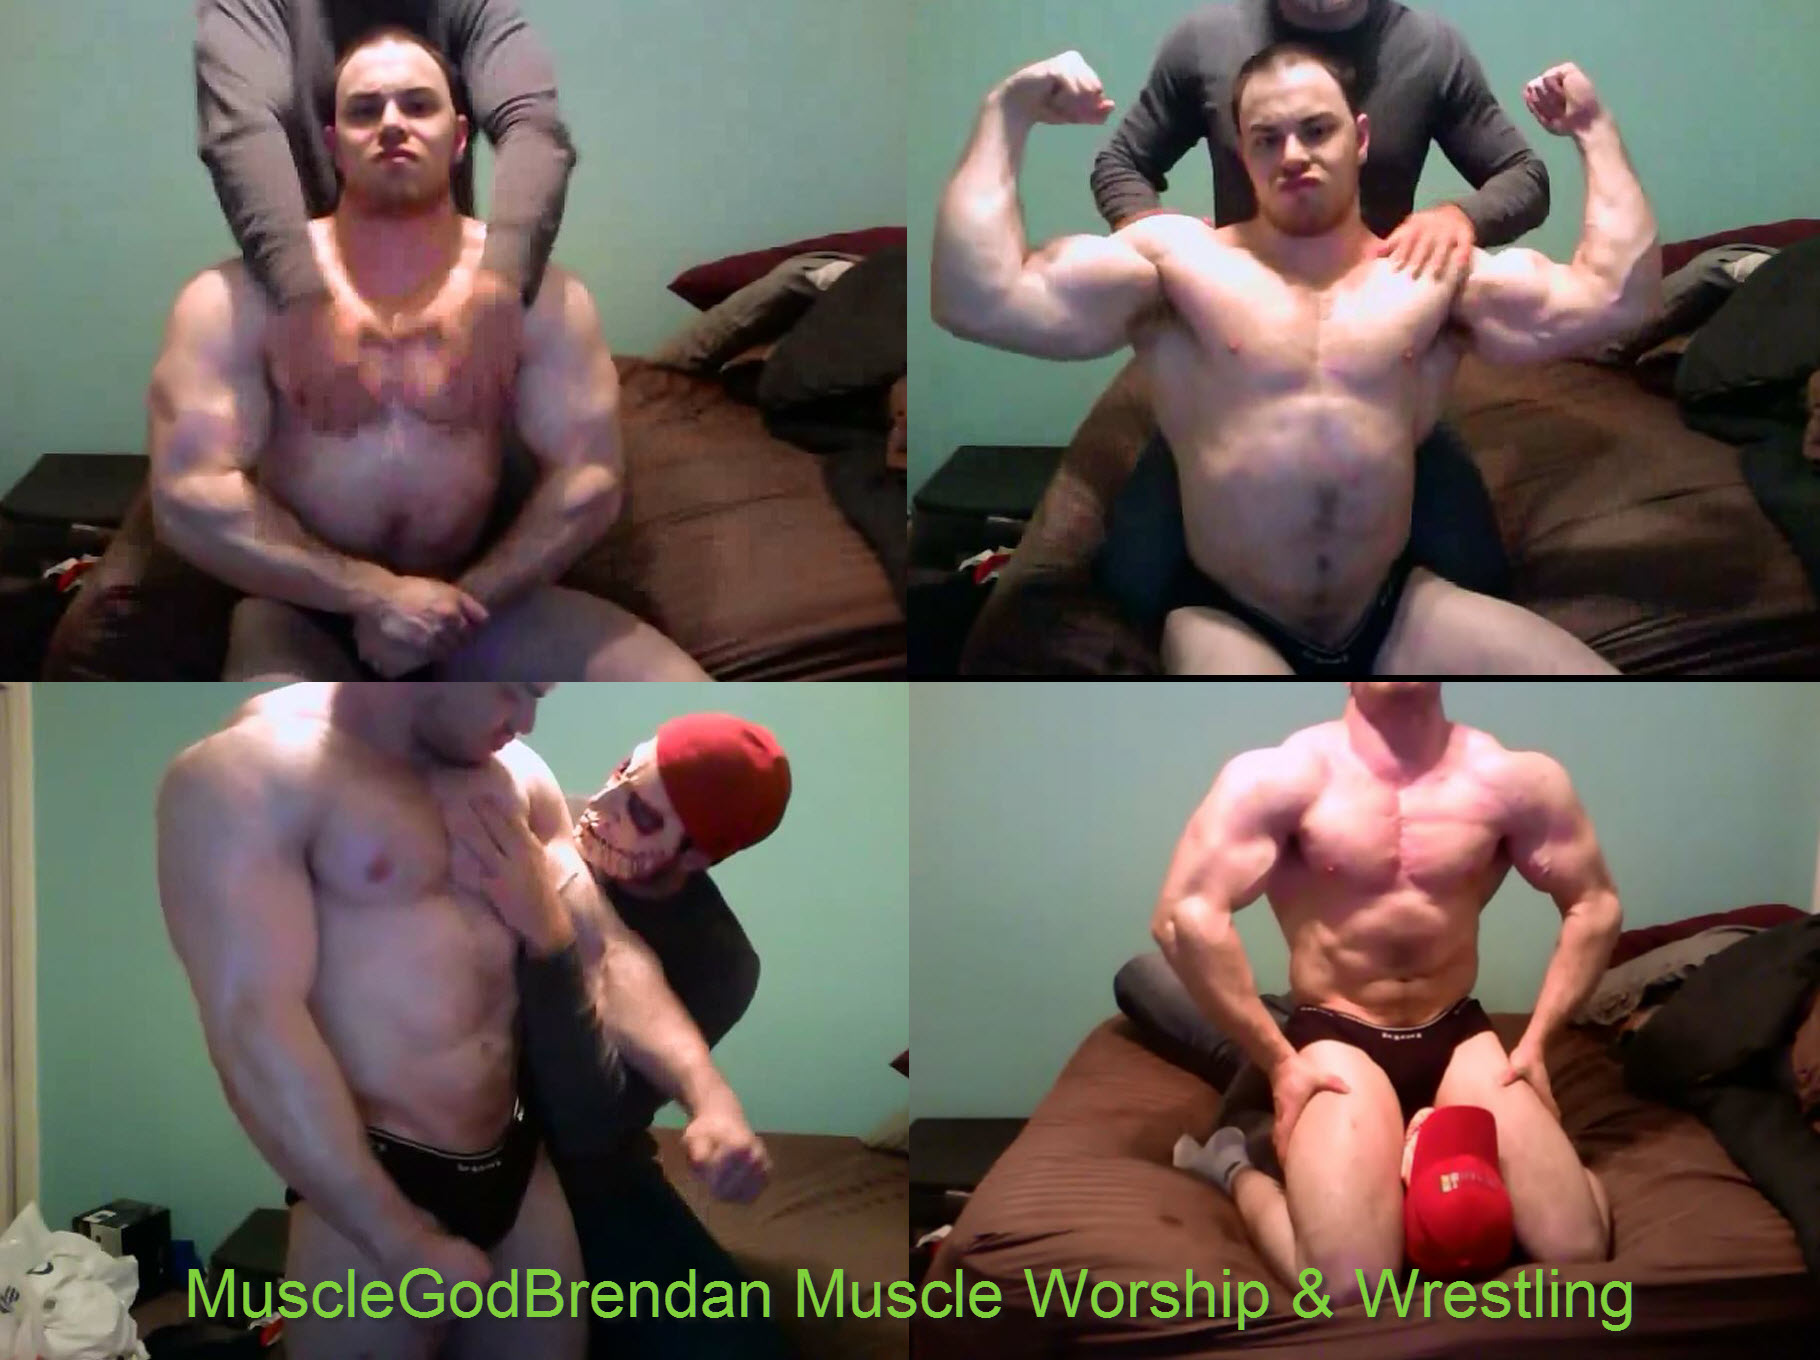 twink submission Muscle